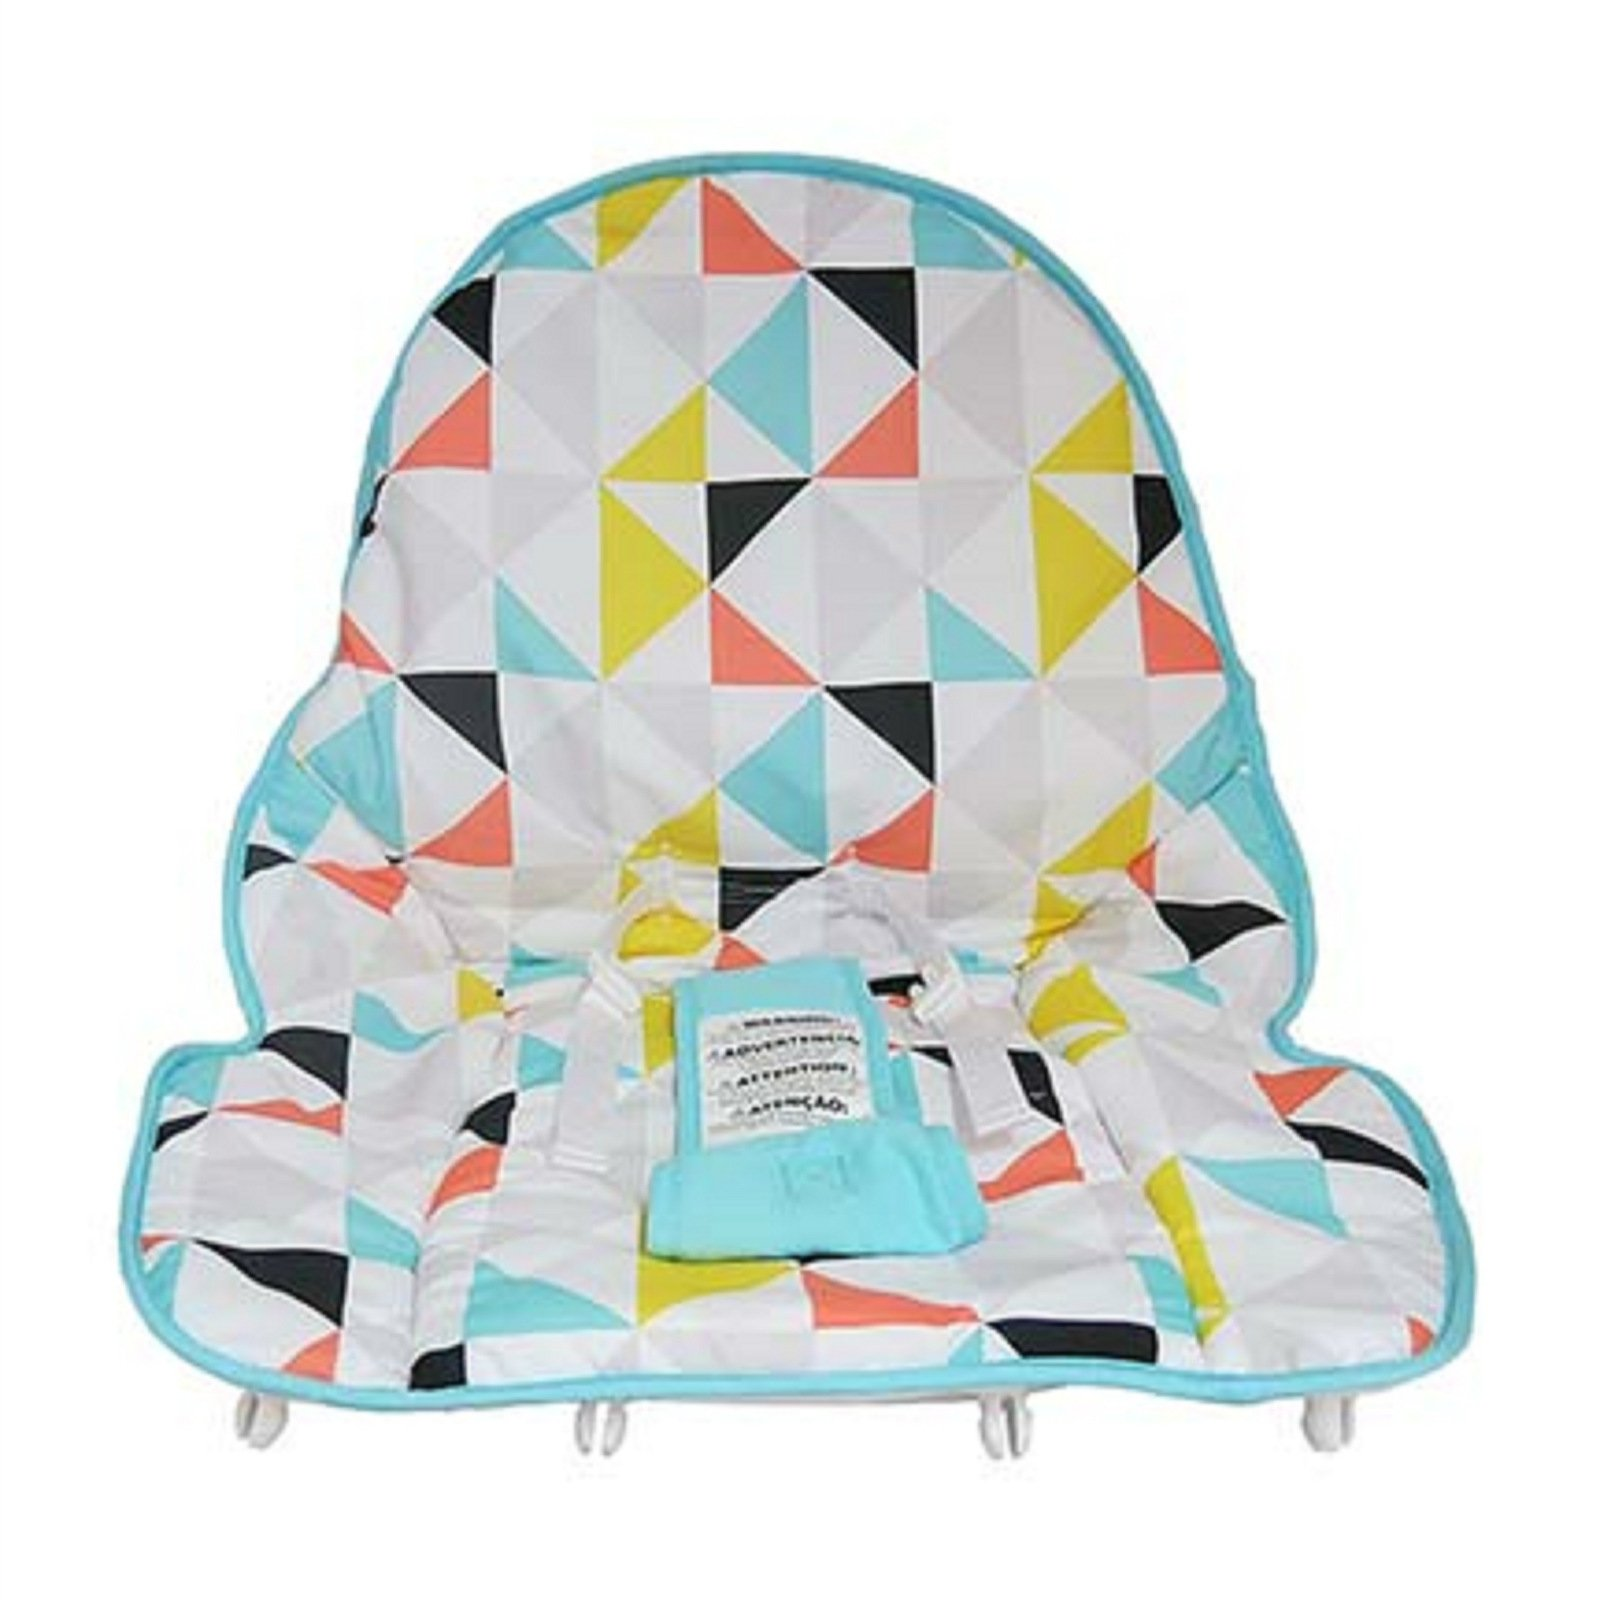 Fisher Price INFANT / NEWBORN TO TODDLER ROCKER Sleeper Replacement Seat Pad , FDP04 TRIANGLES MULTI PAD